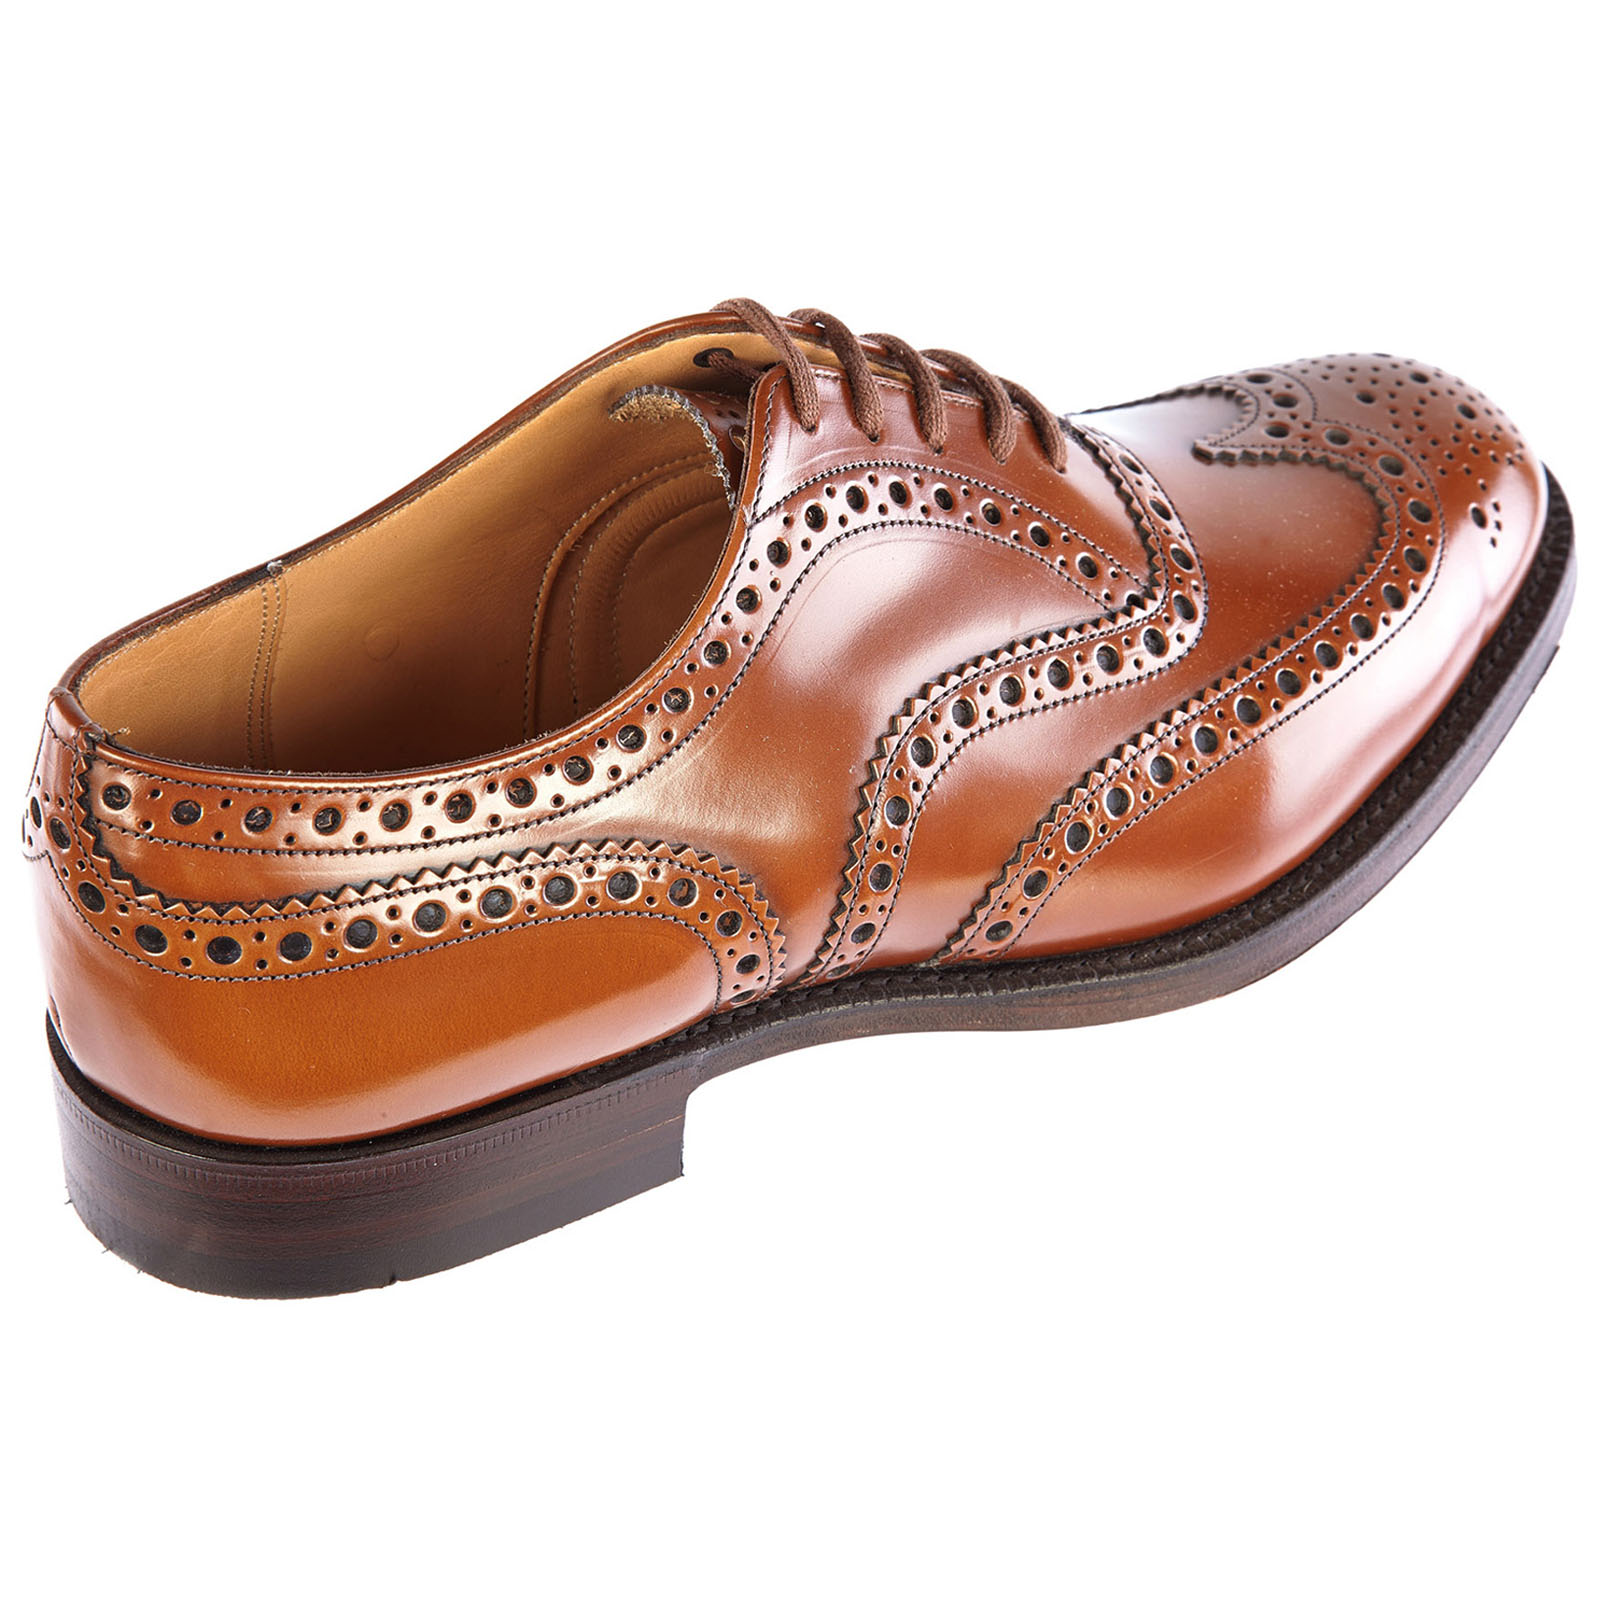 Men's classic leather lace up laced formal shoes brogue